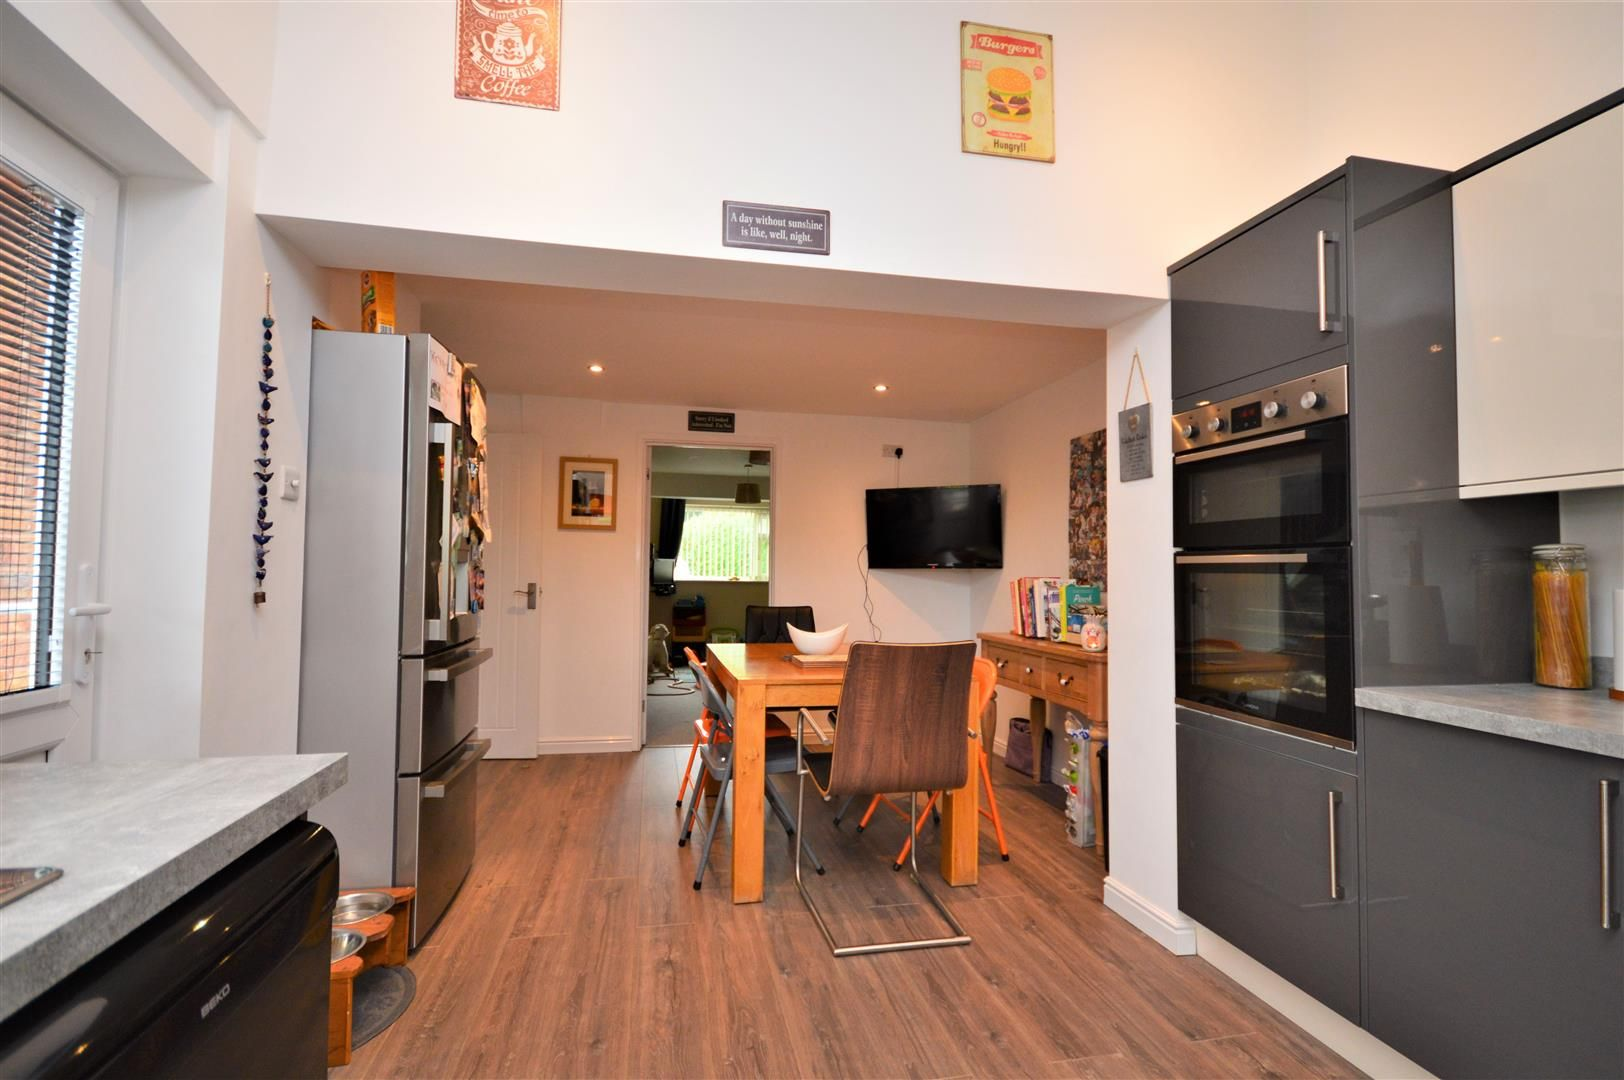 4 bed semi-detached for sale in Clehonger  - Property Image 6